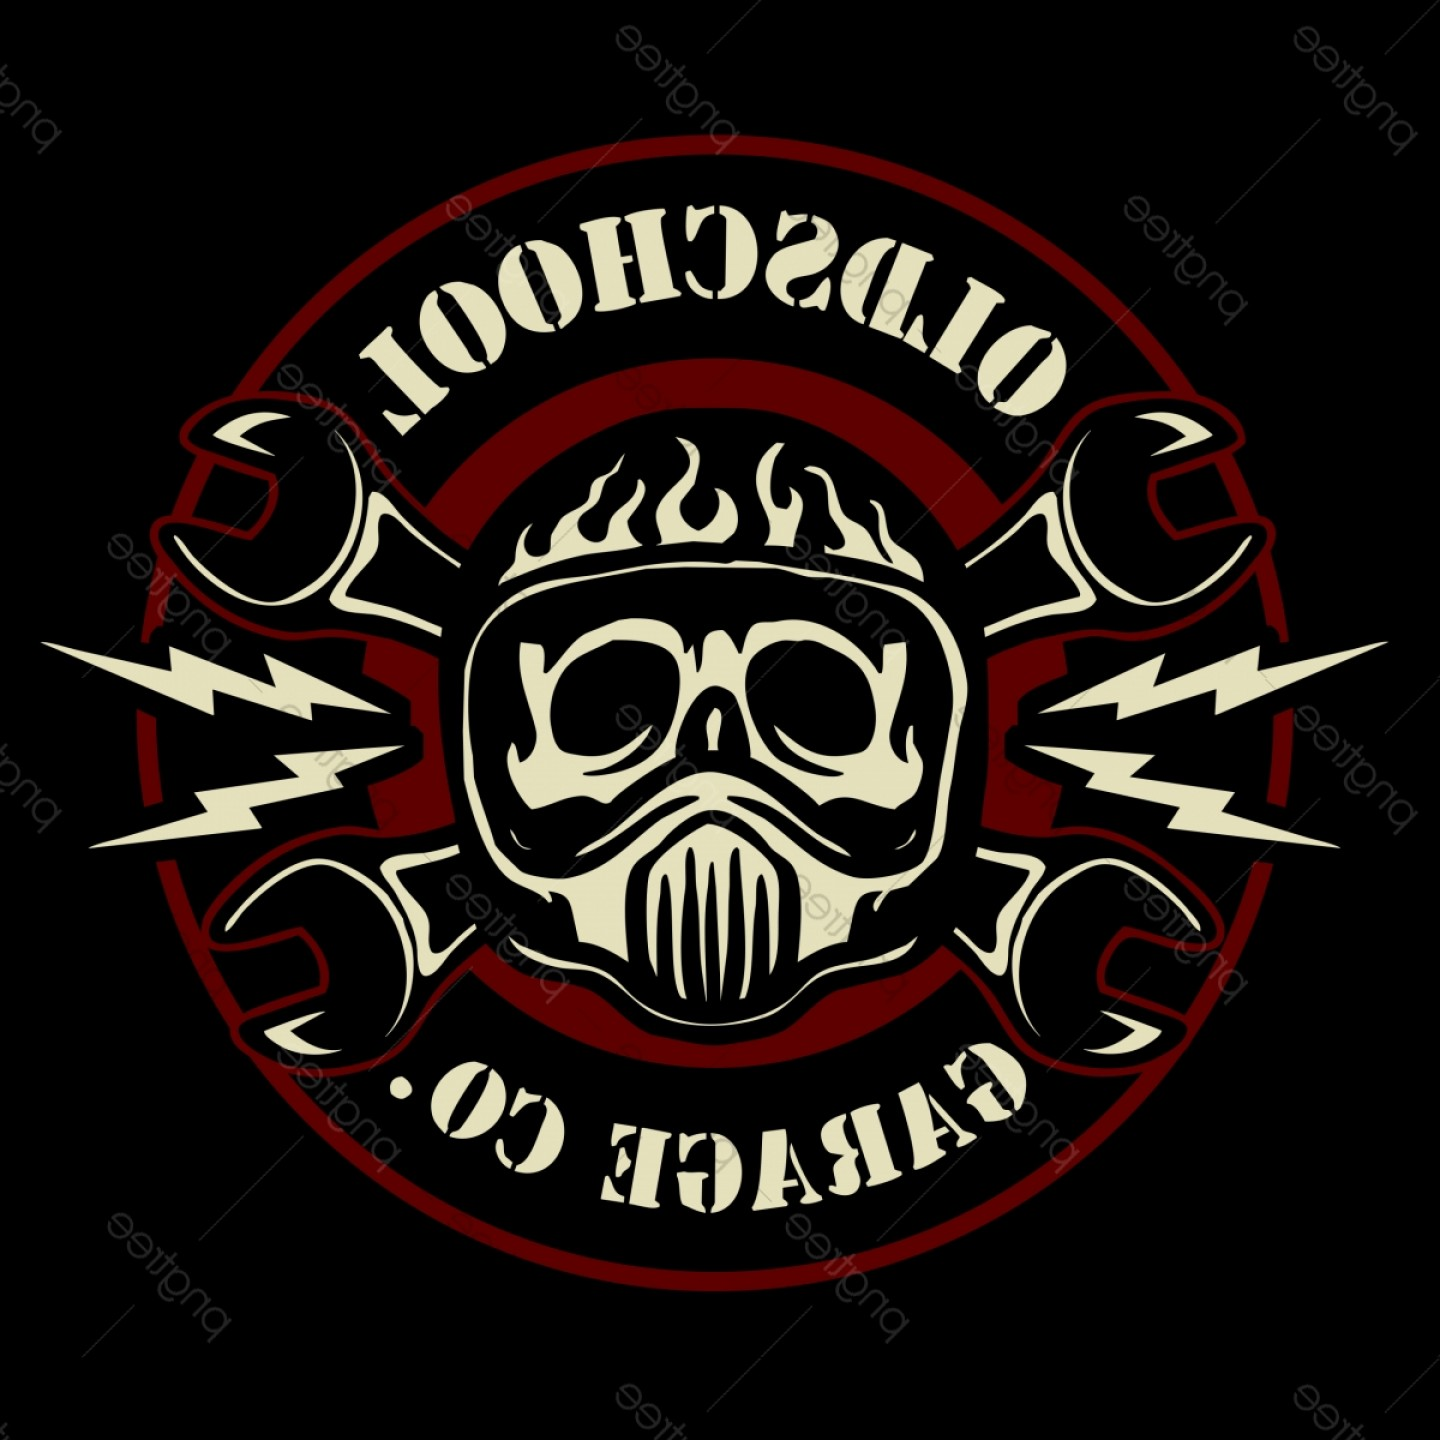 Motorcycle Club Vector: Vector Of Skull With Retro Full Face Helmet Suitable For Motorcycle Club Logo